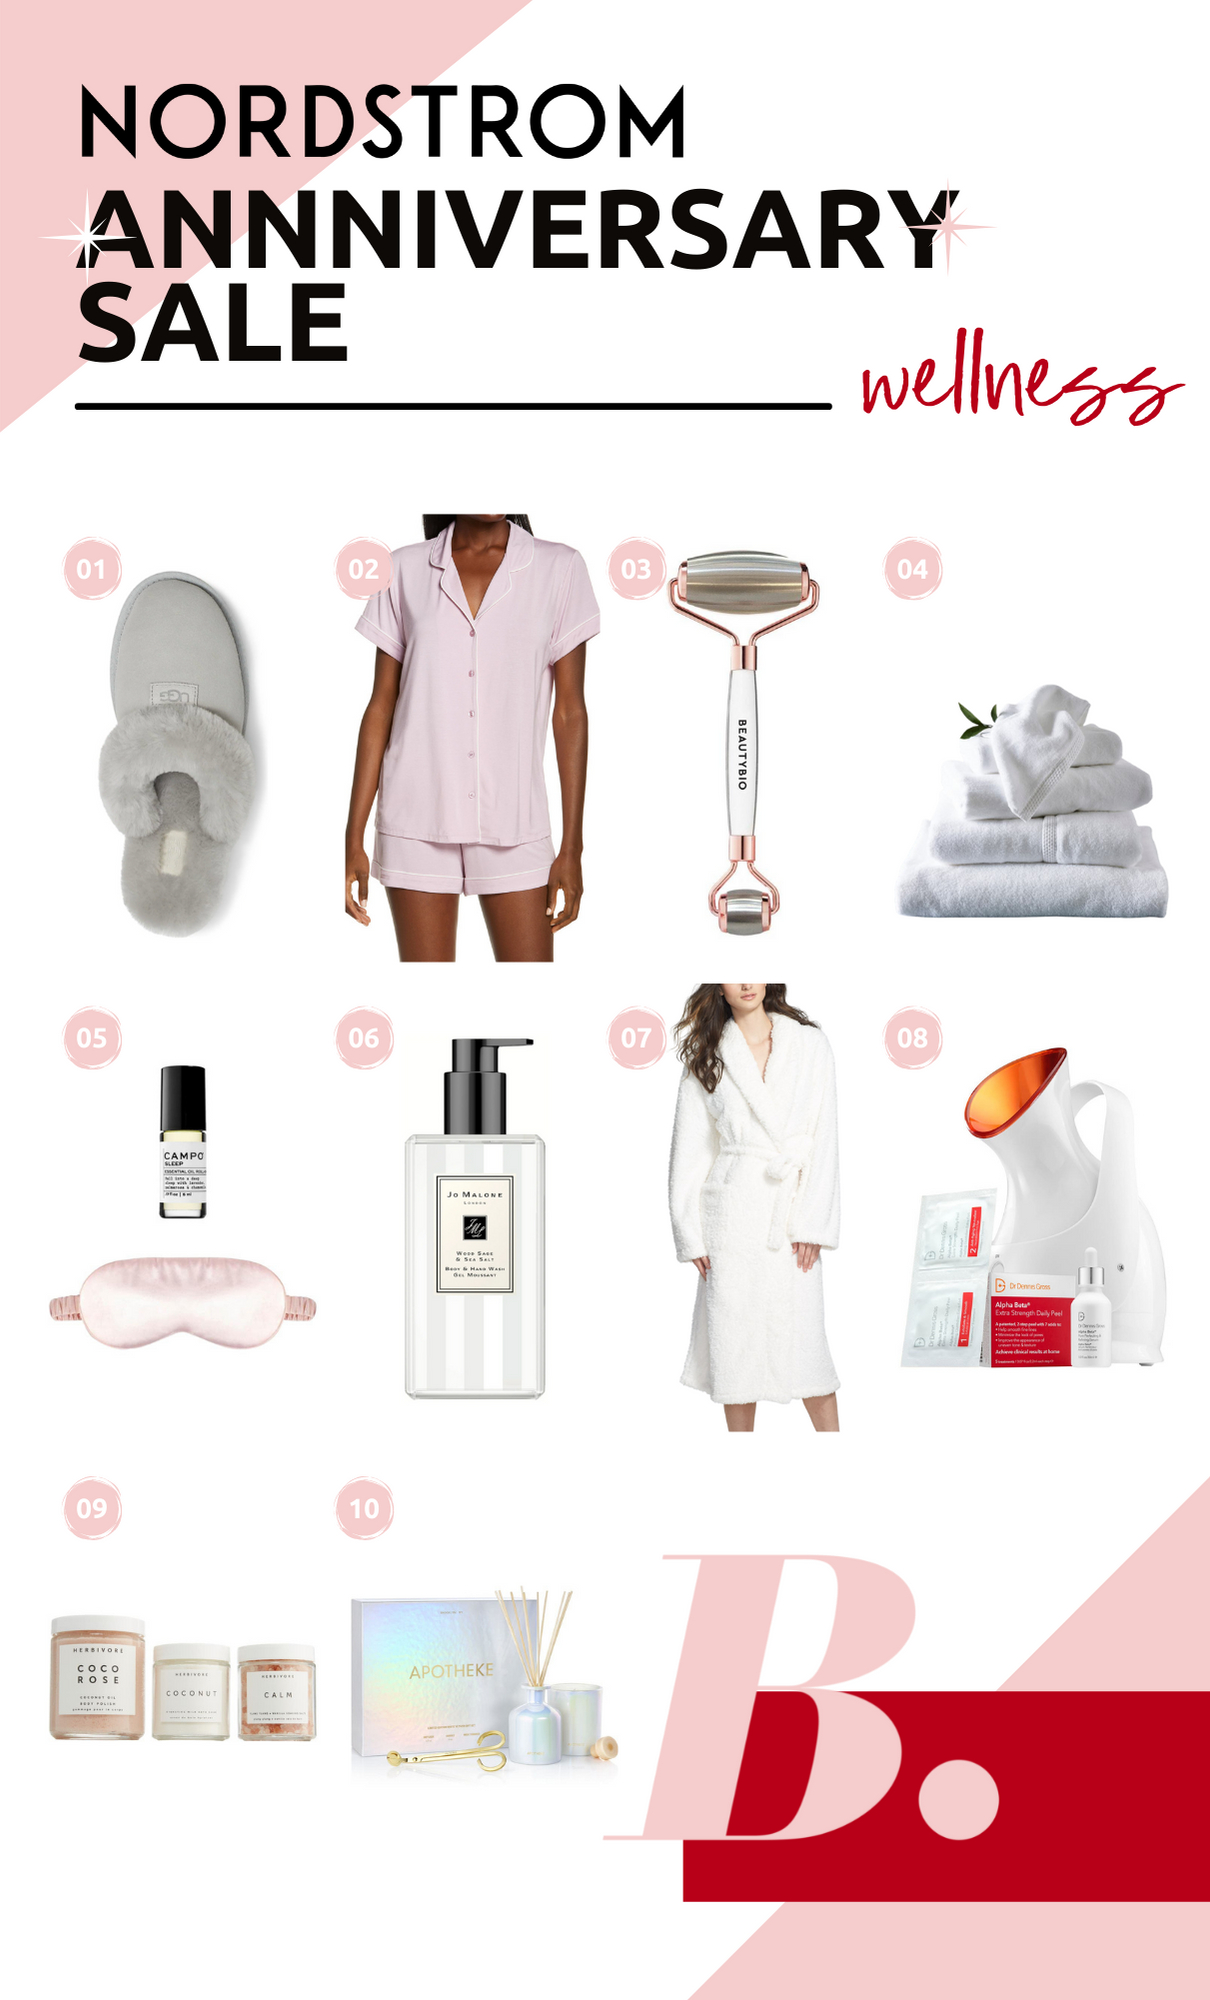 Busbee Nordstrom Anniversary Sale How To Relax At Home, relaxing spa day at home, nordstrom anniversary sale, nsale, best nordstrom sale finds